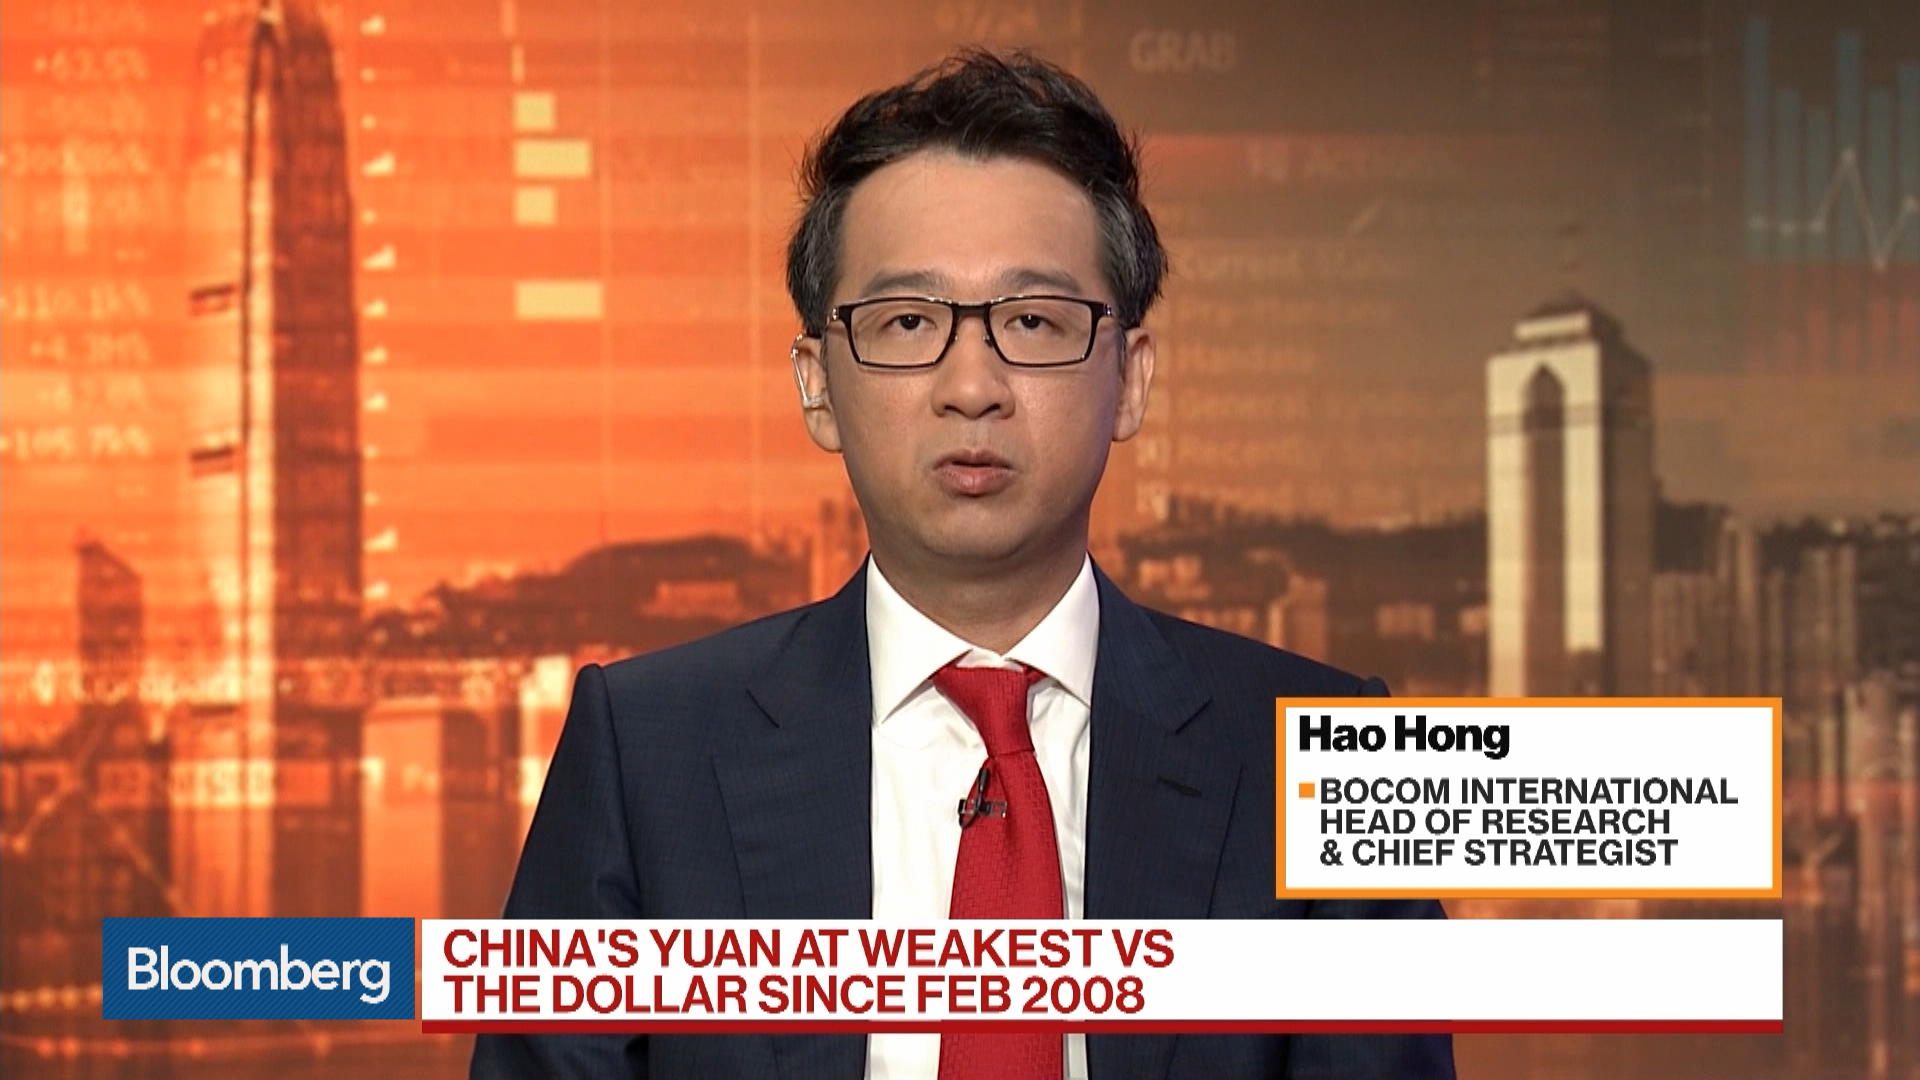 Bocom International Head of Research and Chief Strategist Hao Hong on U.S.-China Trade War, Markets